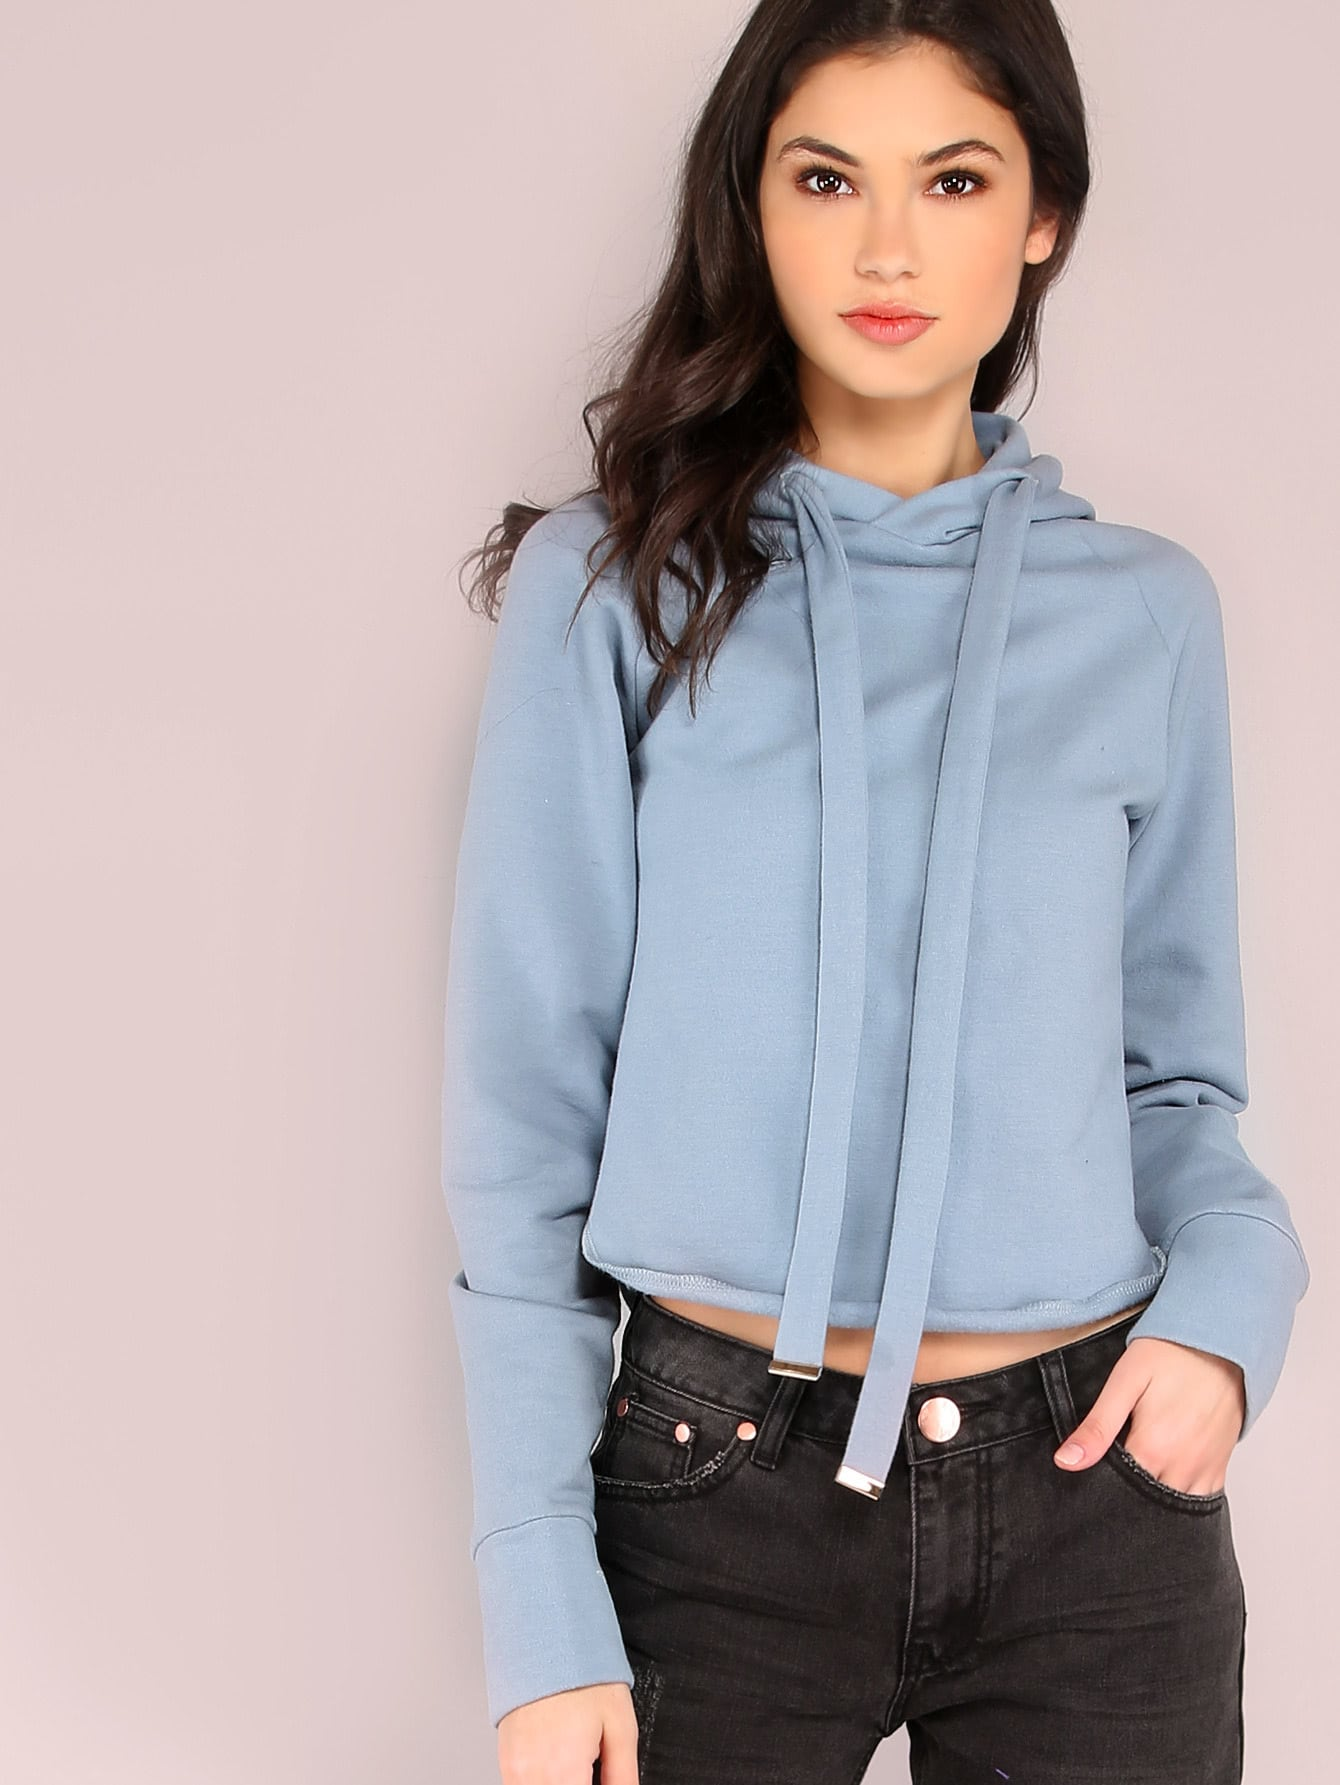 Cropped Pocketless Row Hem Raglan SLeeve Hooded Sweatshirt new york letter cropped sweatshirt